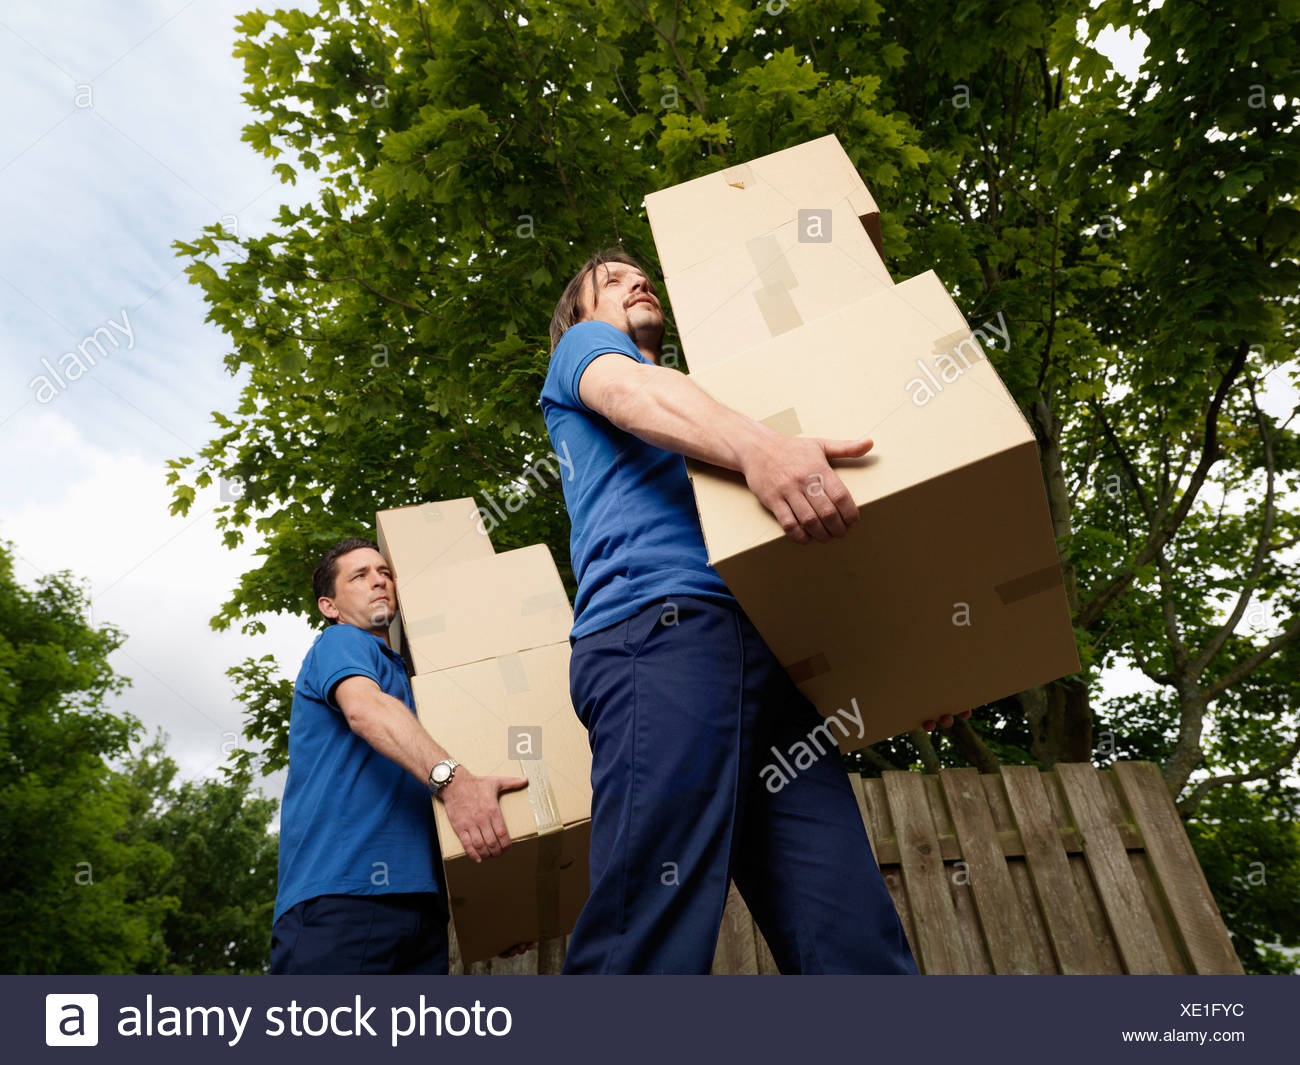 two men carrying boxes - Stock Image